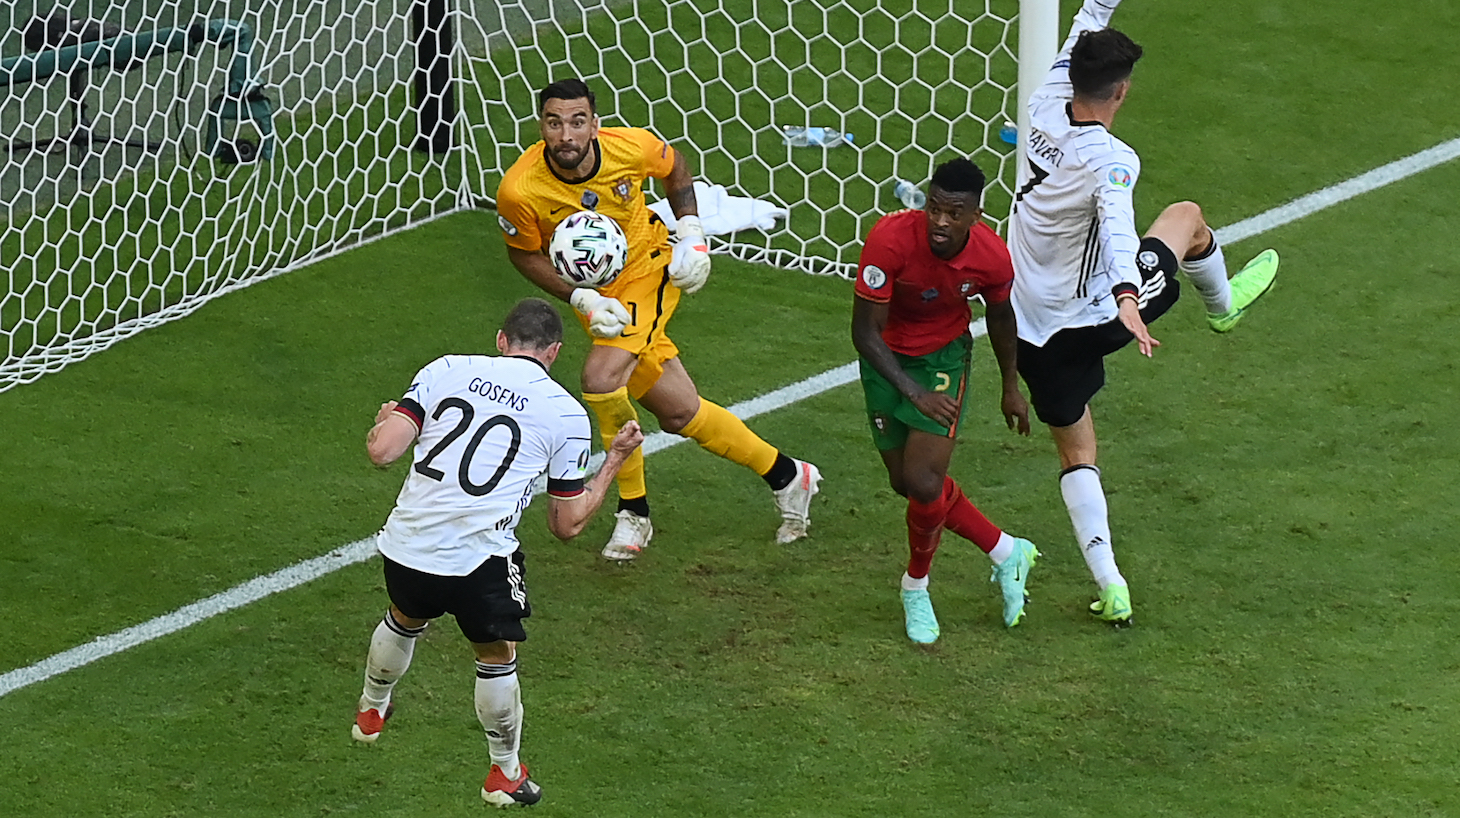 Germany's defender Robin Gosens (L) heads the ball to score their fourth goal during the UEFA EURO 2020 Group F football match between Portugal and Germany at Allianz Arena in Munich on June 19, 2021.